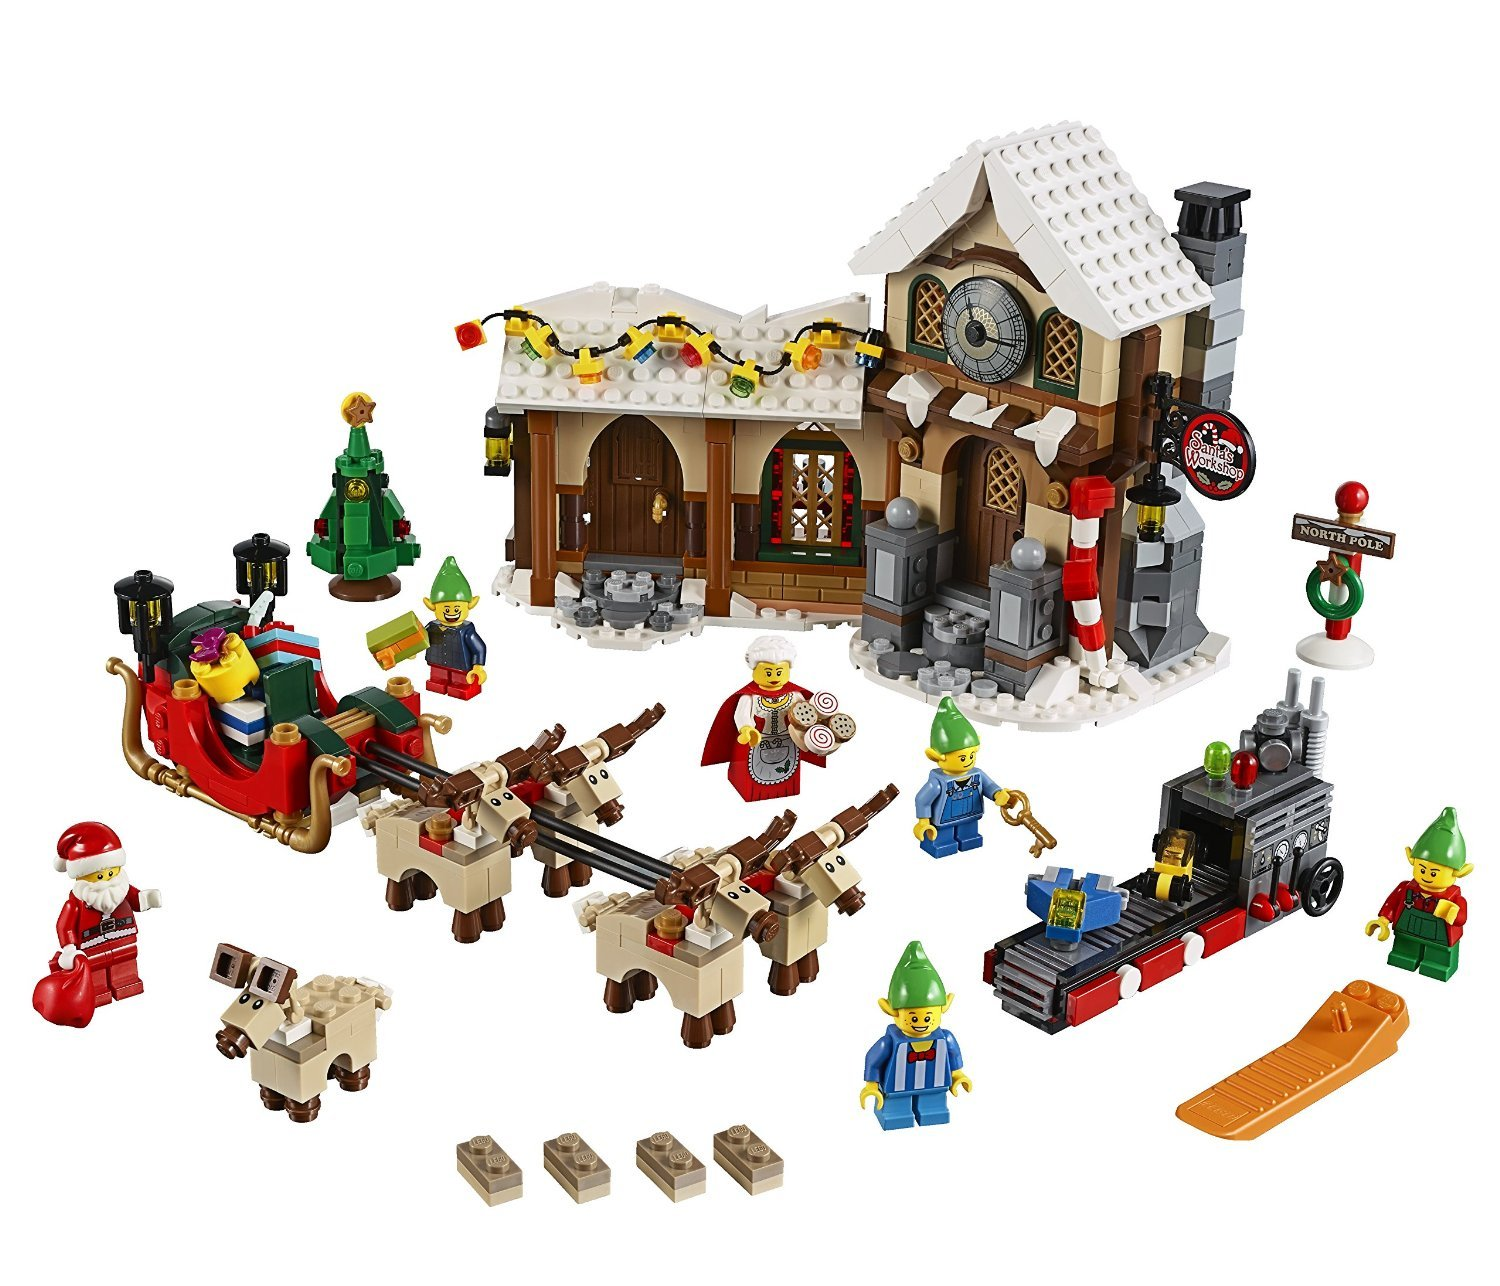 LEGO Creator (883pcs) Santa's Workshop Christmas Building Block Toys